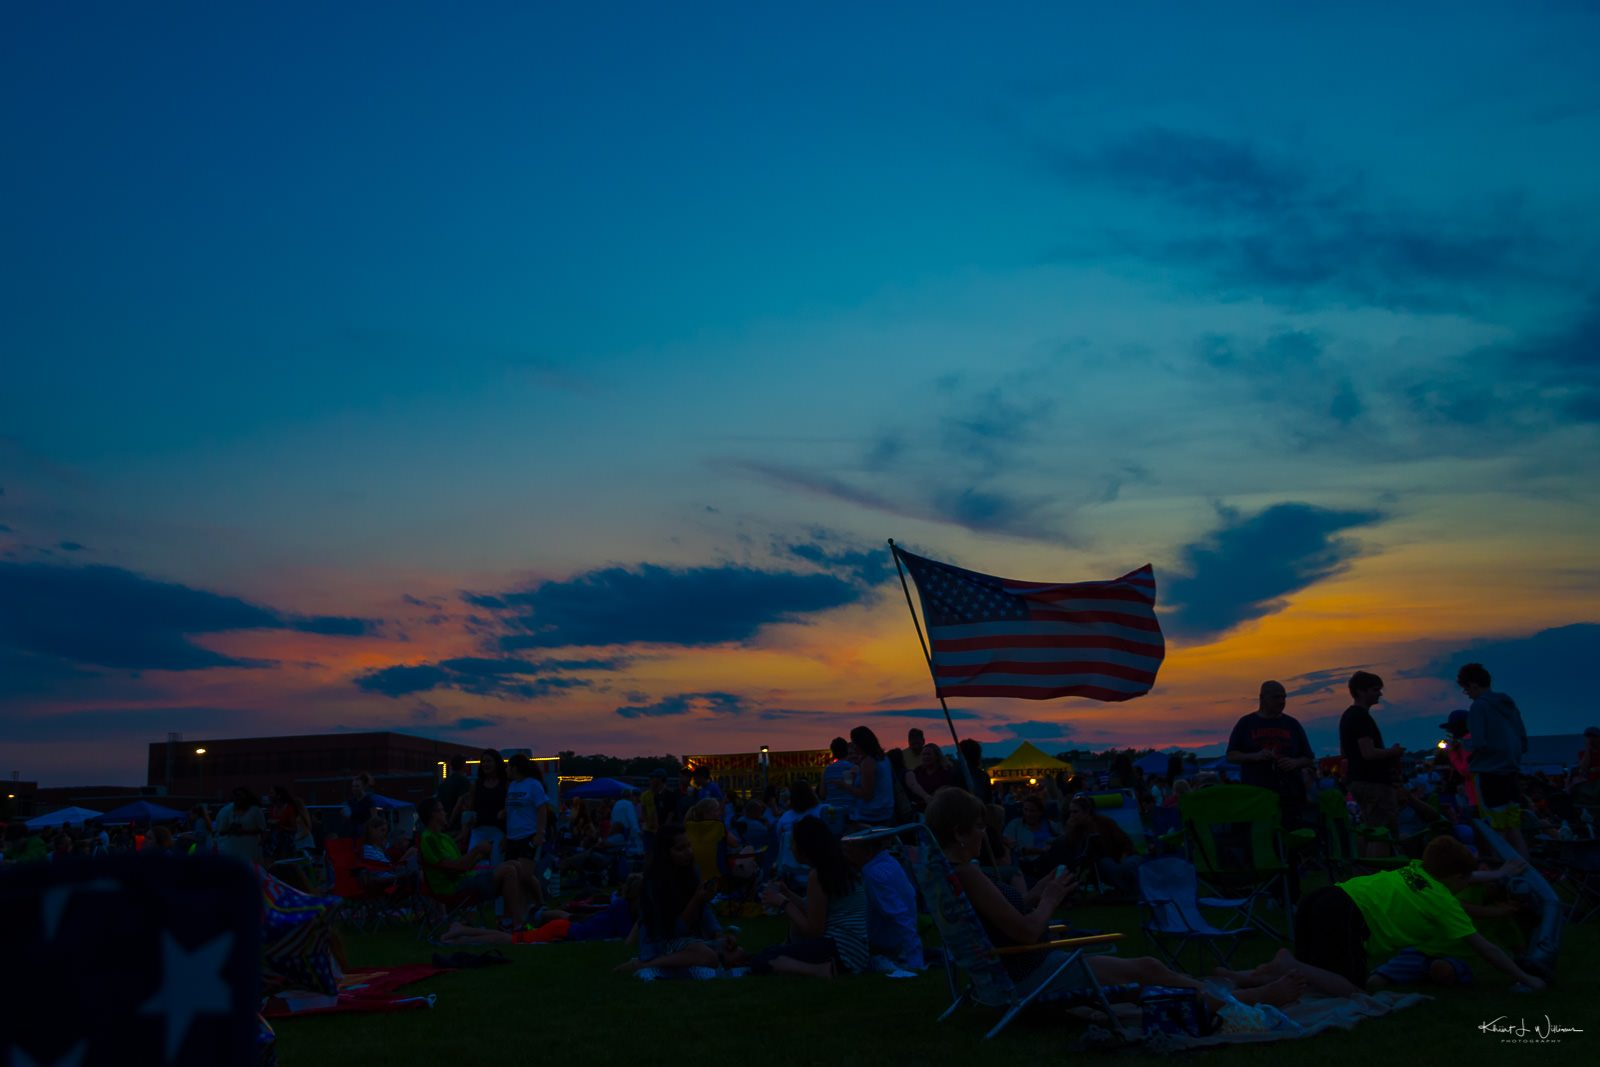 2017 Favourites Last night before the Montgomery Township Independence Day Fireworks at the Montgomery High School NIKON D5100 20170629 1600x1067